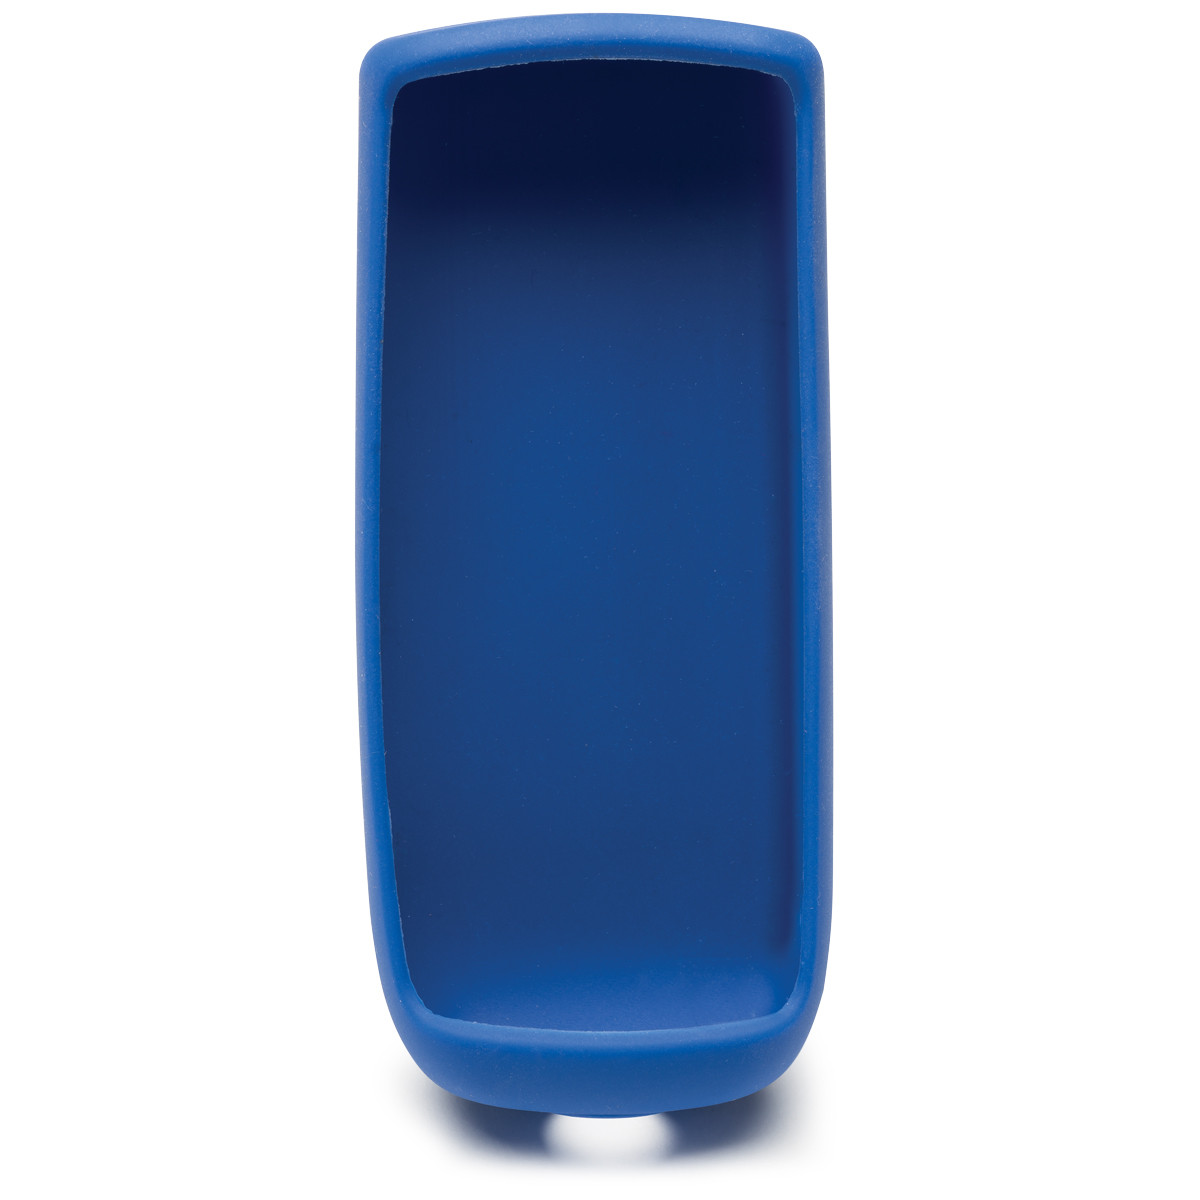 Blue Shockproof Rubber Boot for Fixed Probes